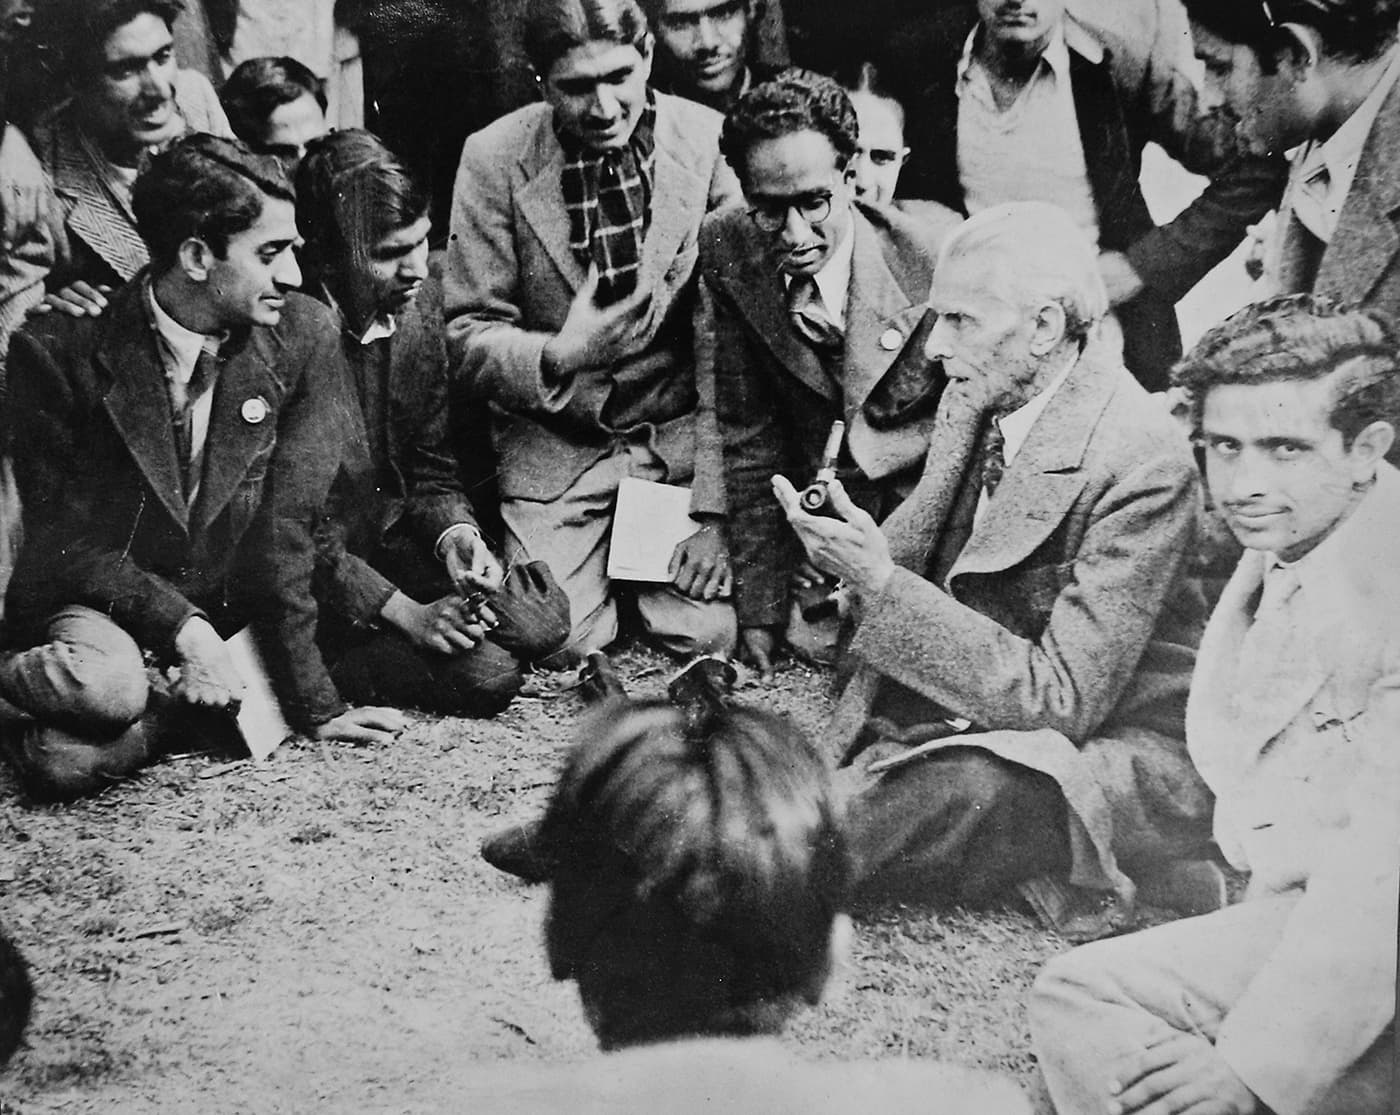 Quaid-i-Azam Mohammad Ali Jinnah in animated conversation with a group of students on the lawns of the University of Punjab, Lahore, on January 7, 1946. The photograph is taken by the prominent photographer of the Pakistan Movement, Faustin Elmer Chaudhry. — Courtesy Lahore Museum Archives